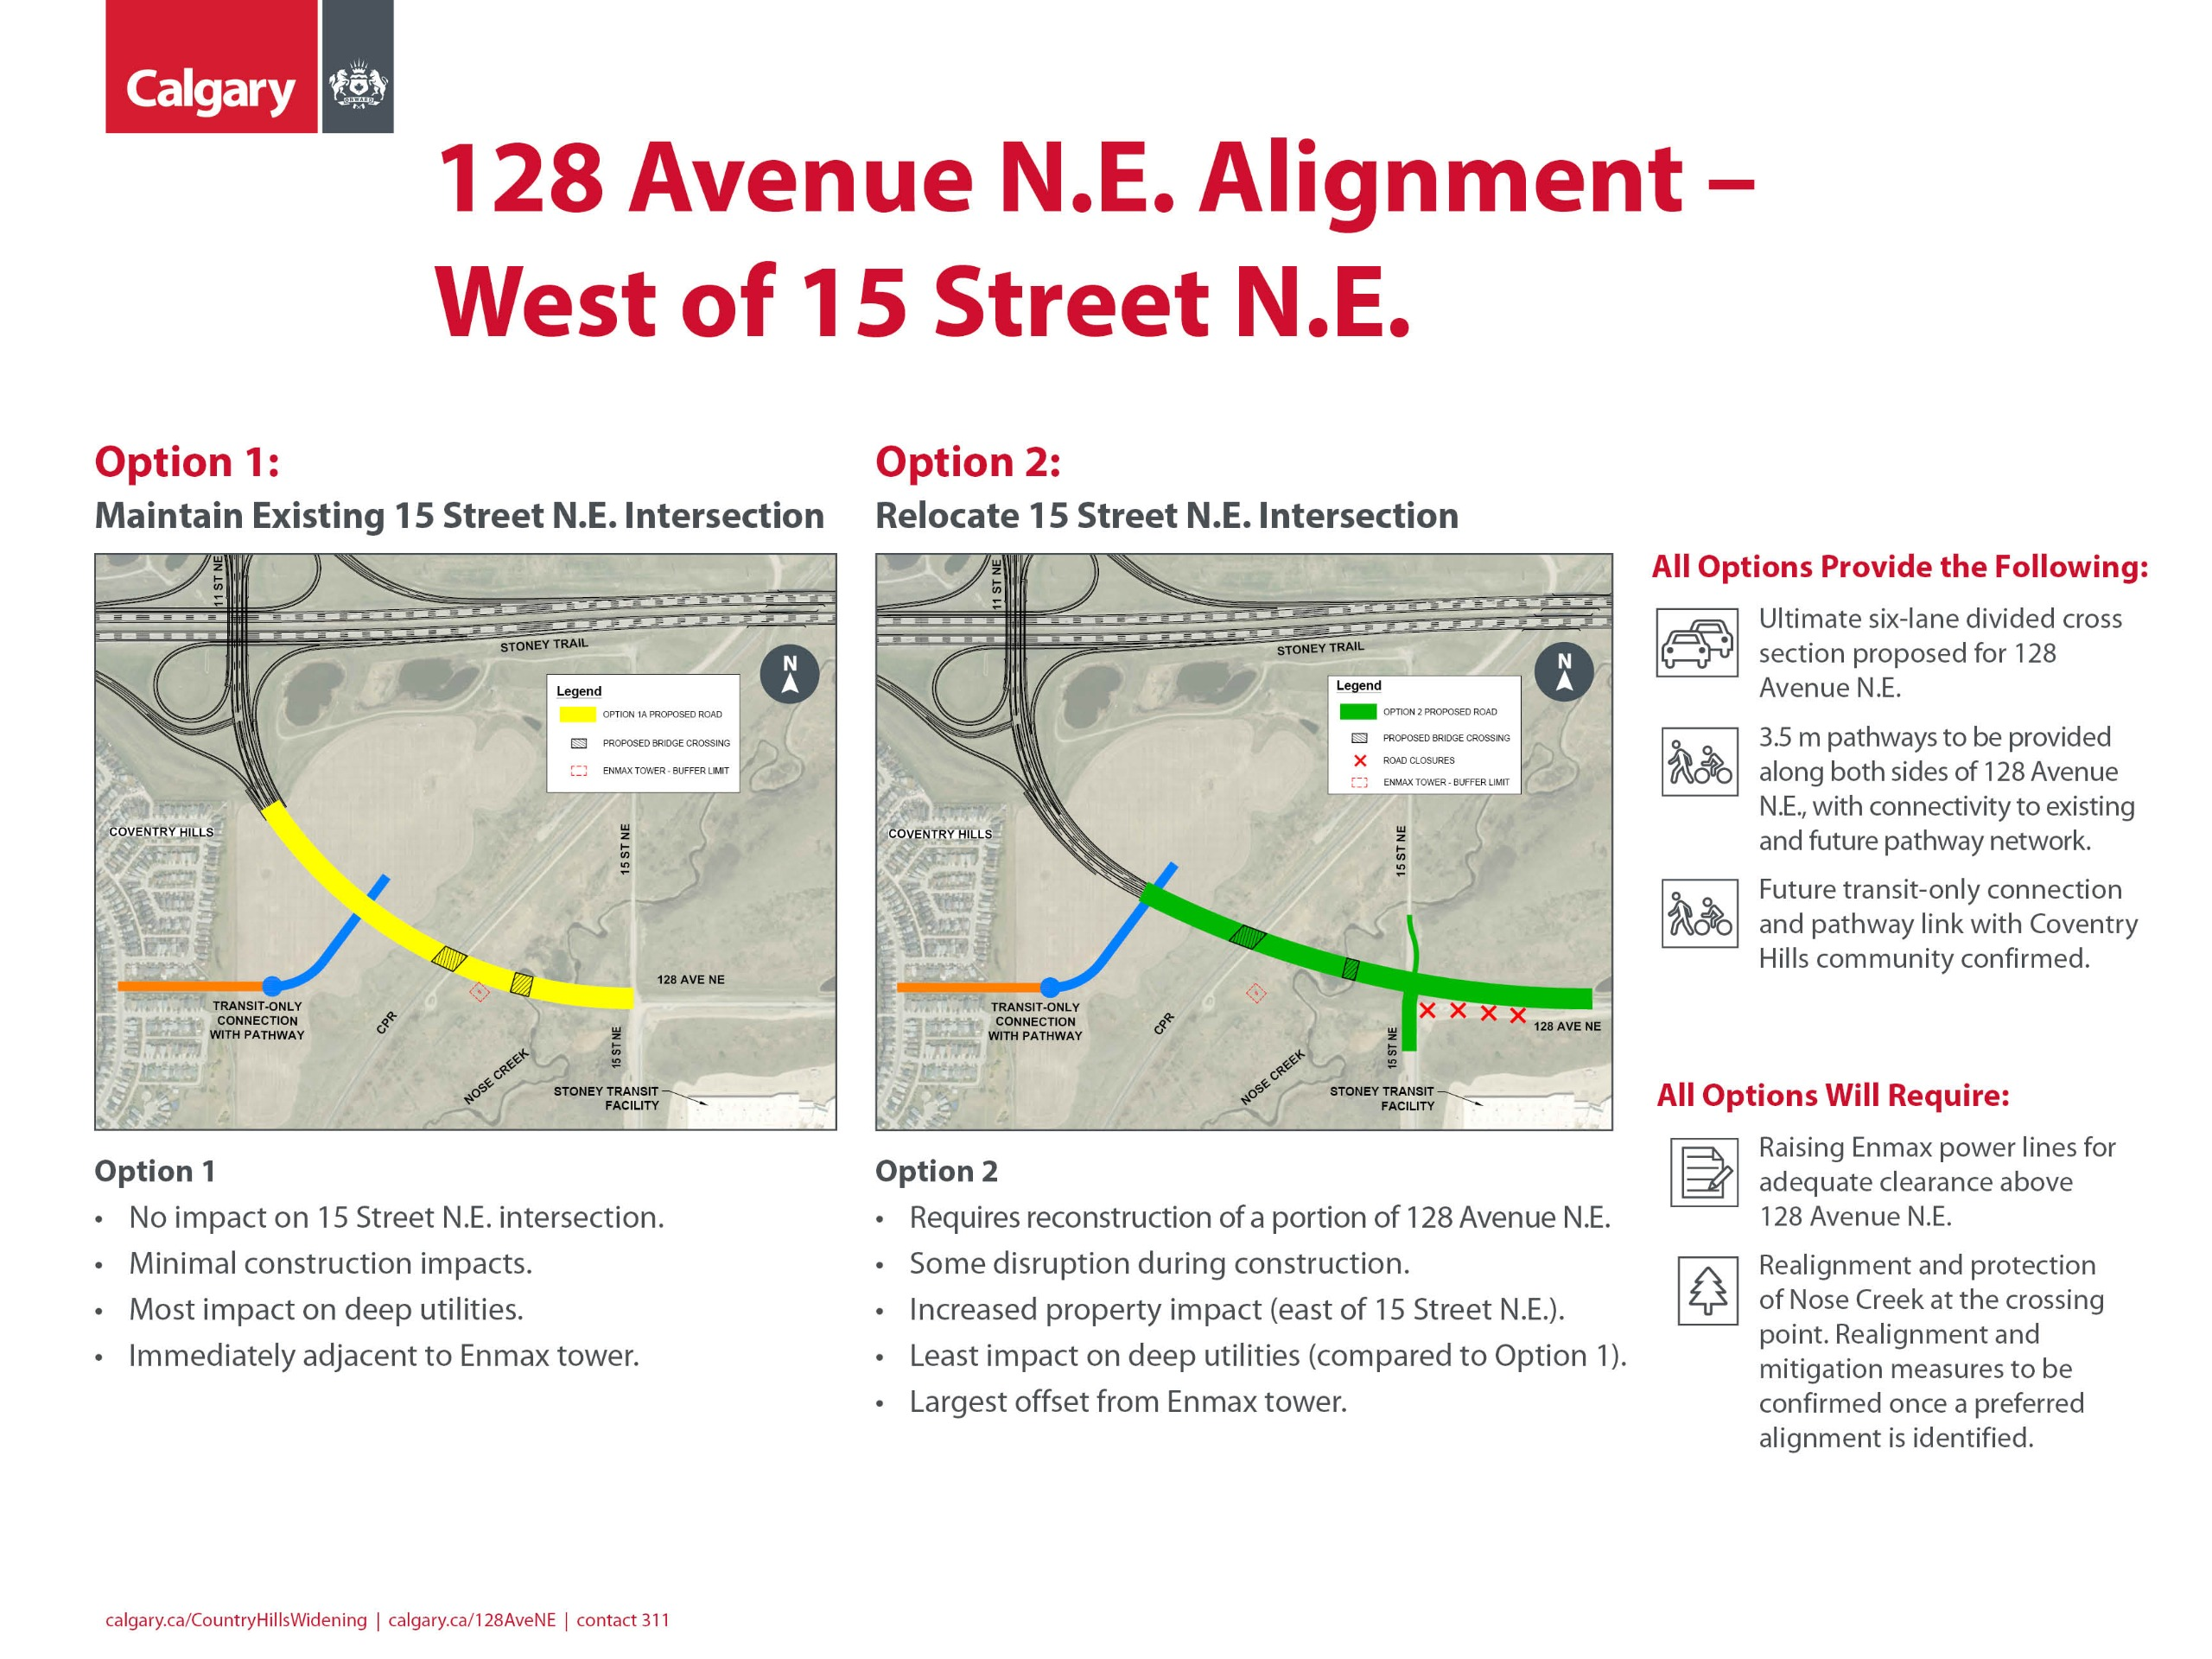 128 Ave. Alignment